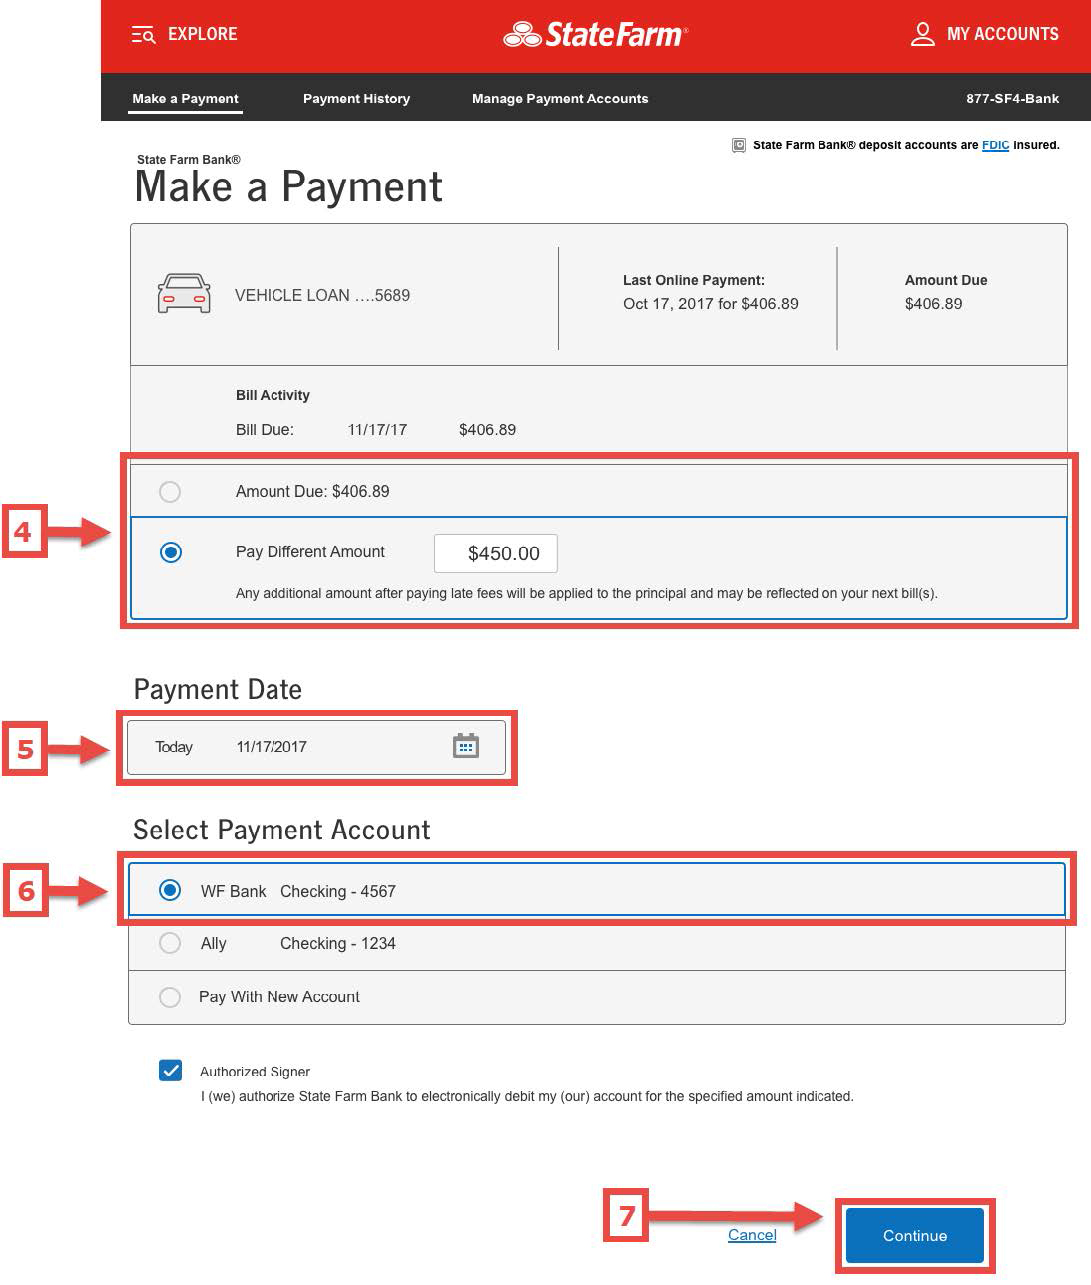 Screen shot of Make a Payment screen with sections for steps 4-7 numerically identified and described in text below the image. Additional steps are on the next slide.